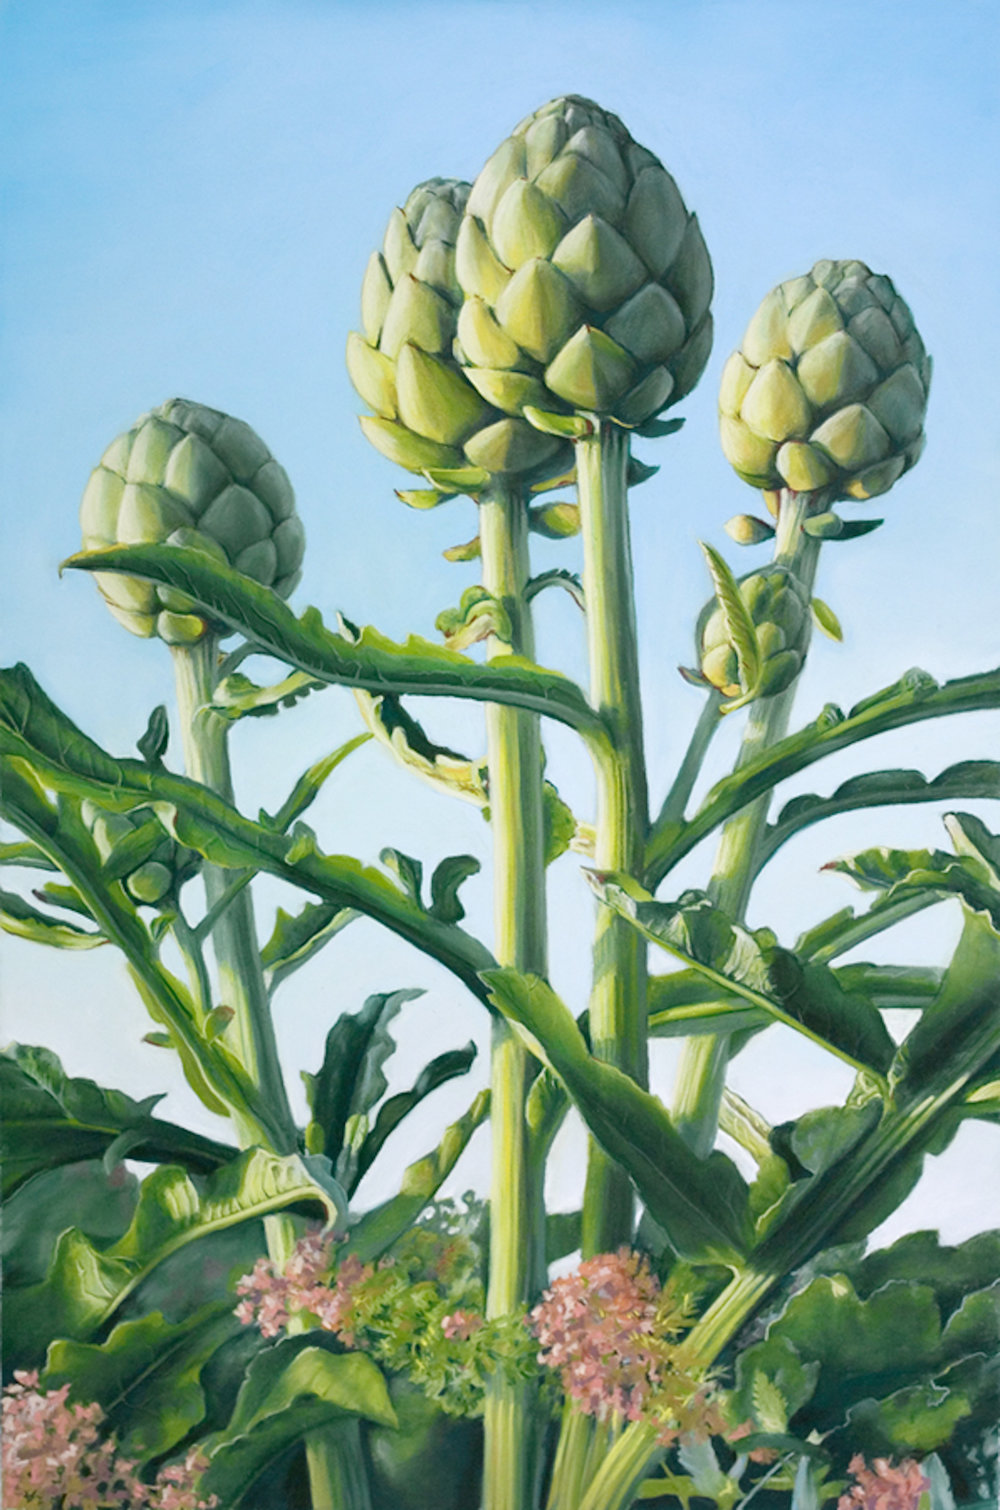 ARTICHOKE FOREST SMALL1500x2265.jpg